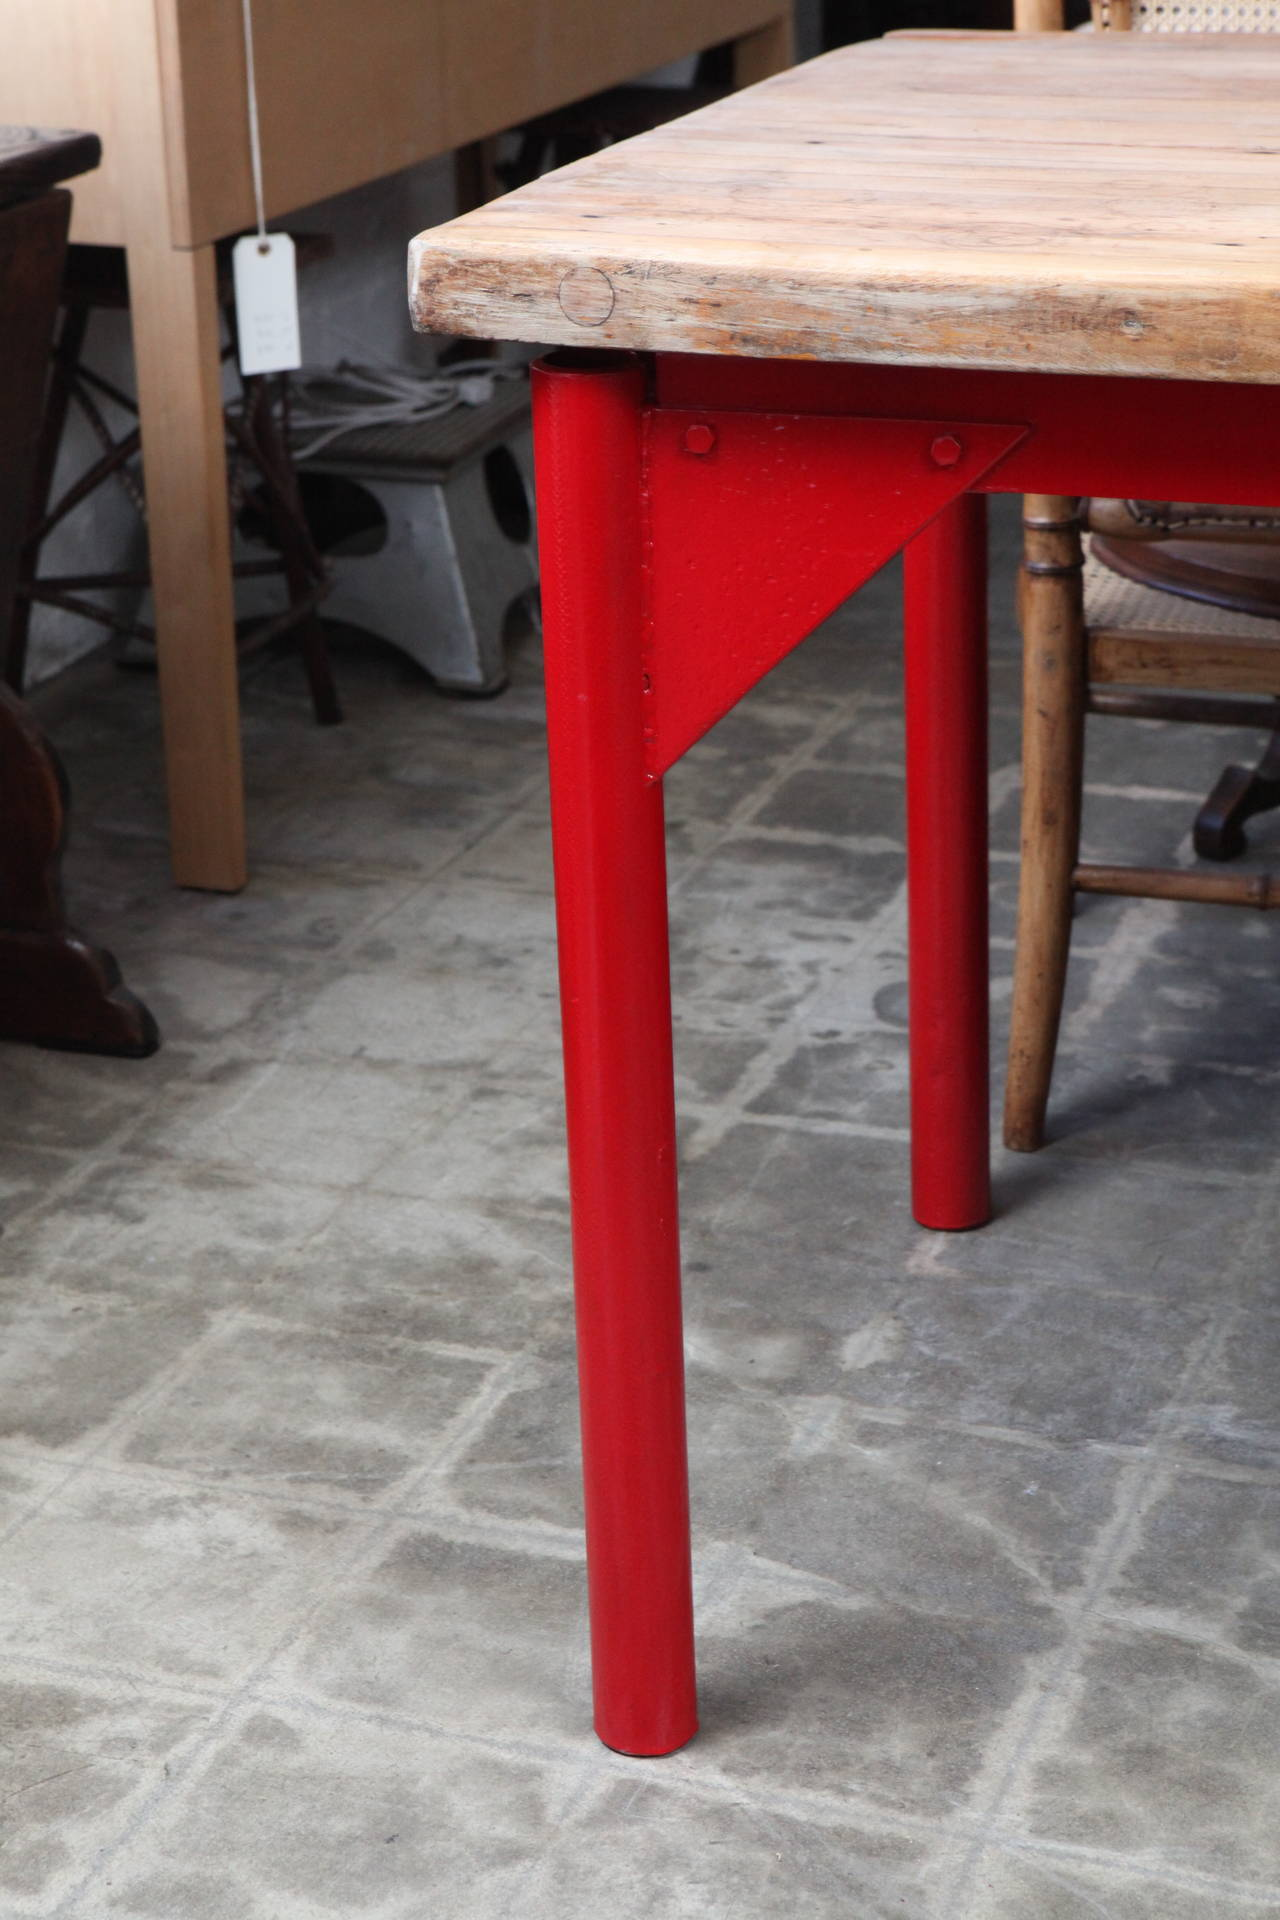 This Large Vintage Butcher Block Restaurant Prep Table Has Metal Legs And Supports Painted In A